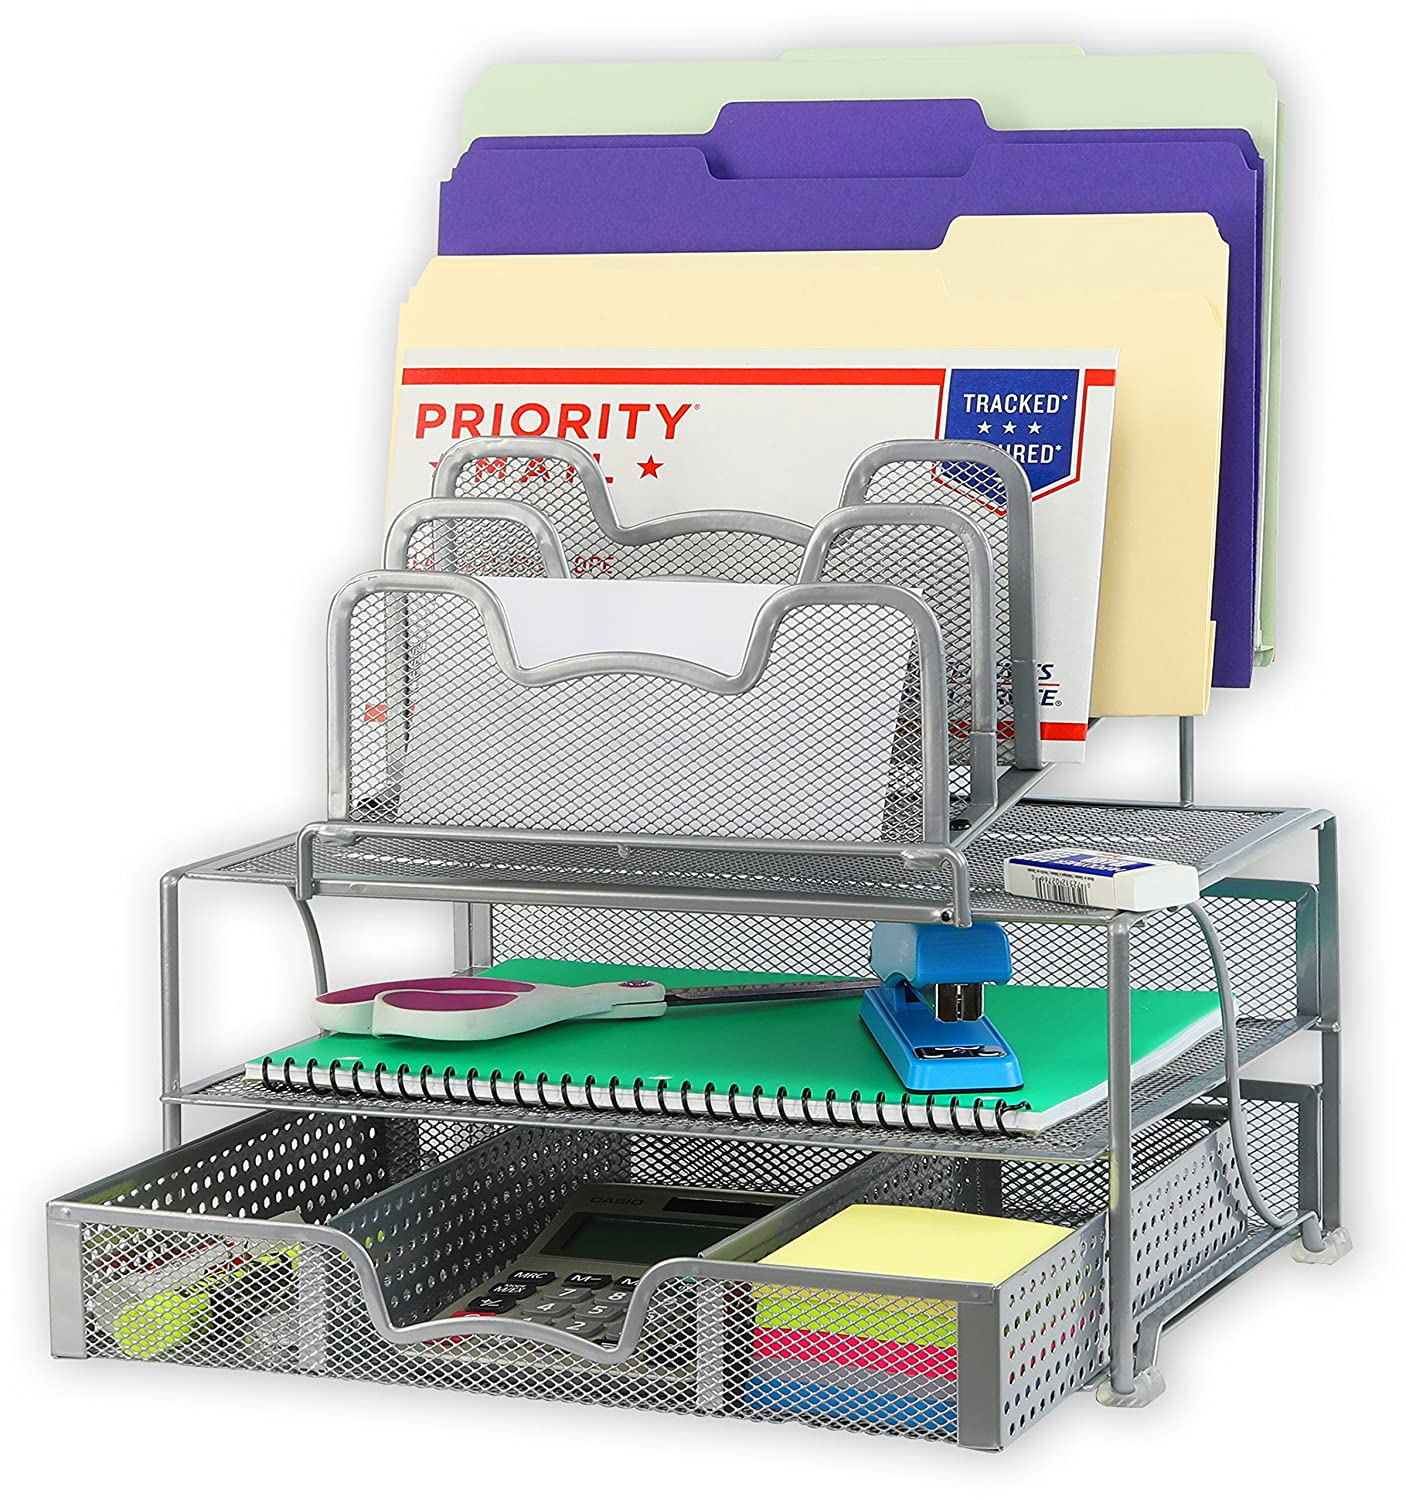 SimpleHouseware Mesh Desk Organizer with Sliding Drawer, Double Tray and 5 Stacking Sorter Sections, Silver Simple Houseware